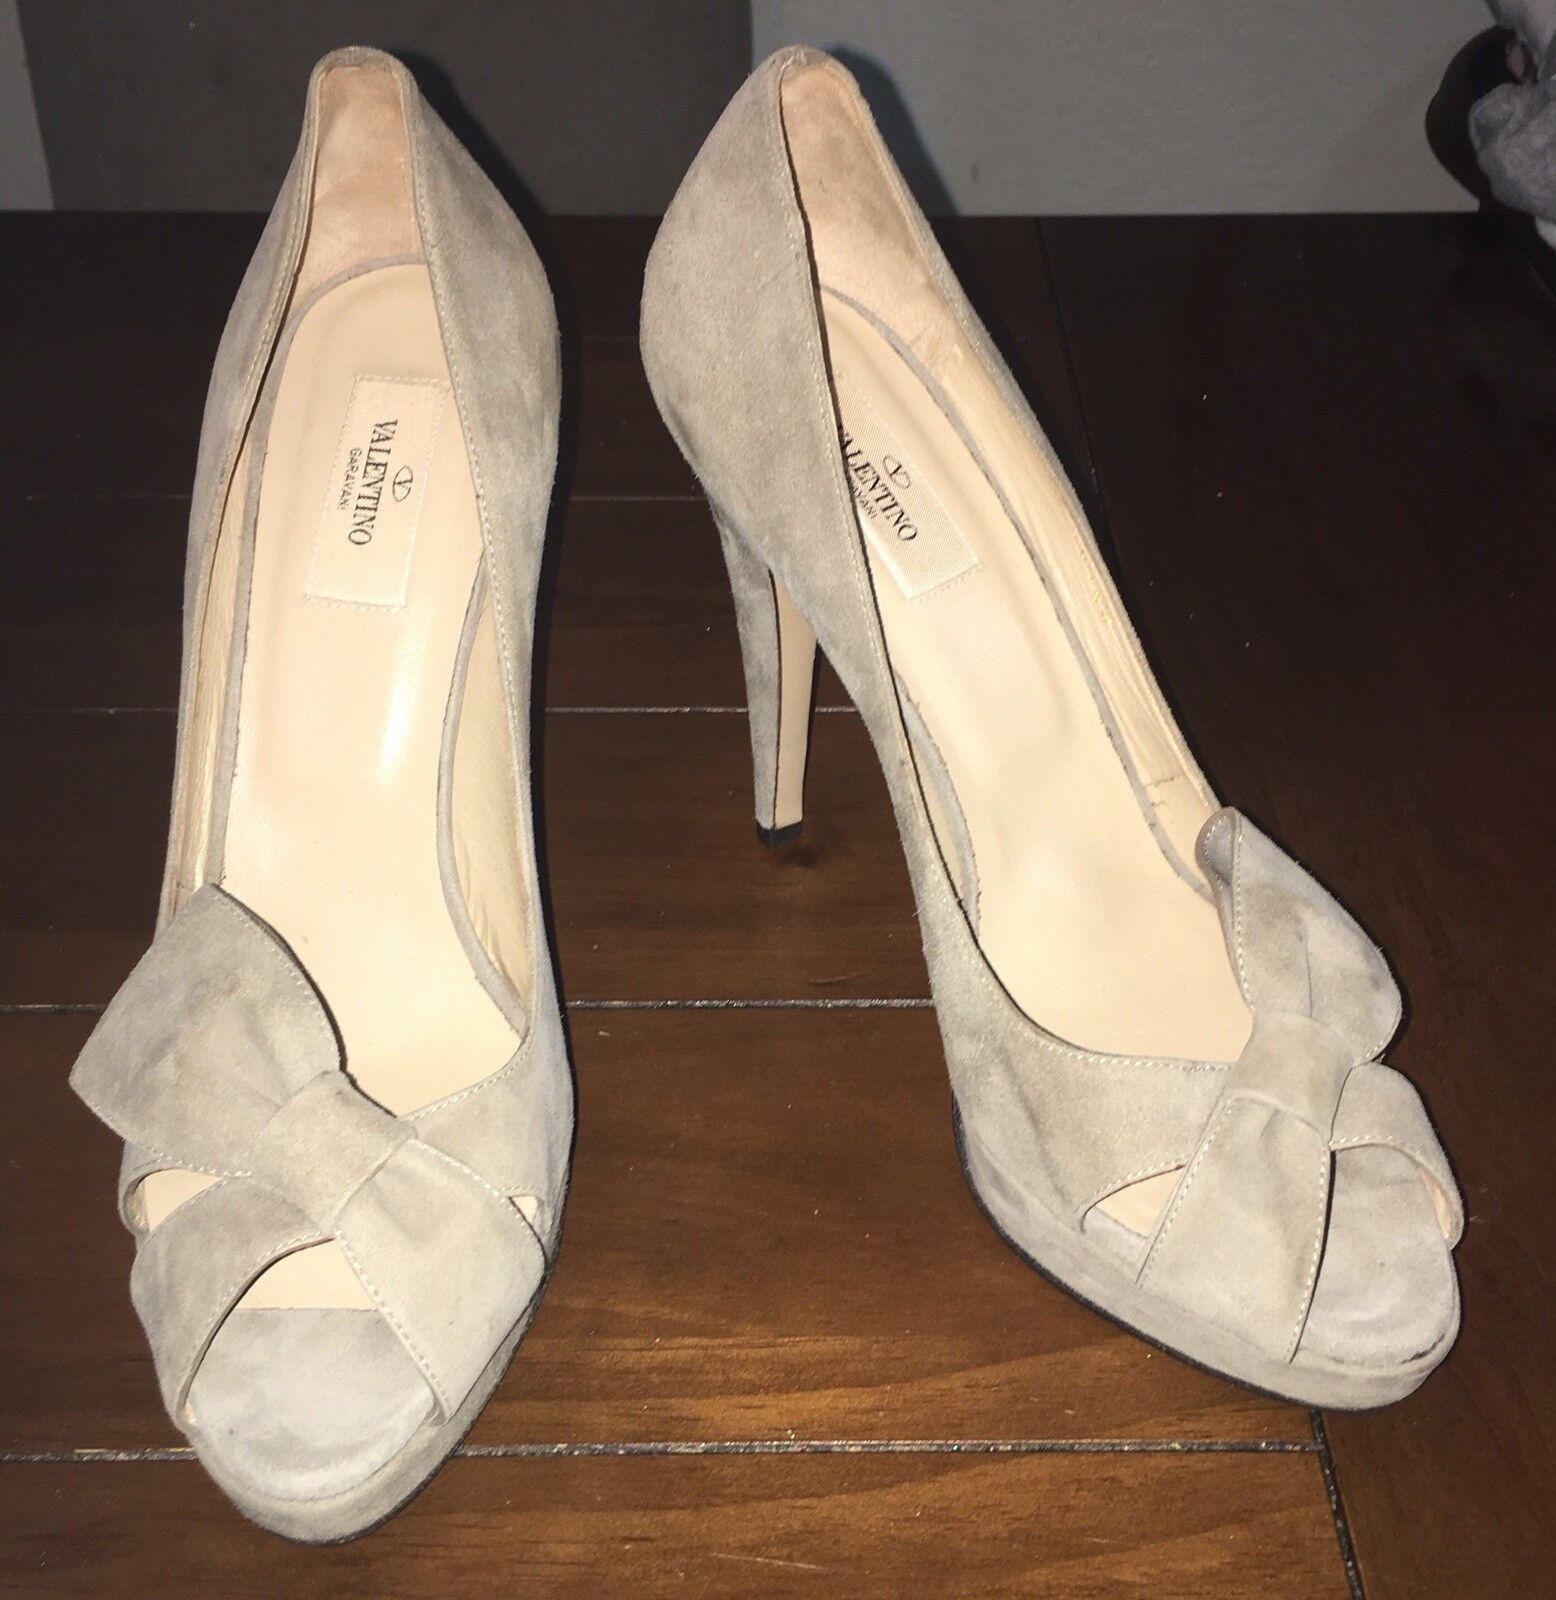 NEW  795 VALENTINO Taupe BOW Suede Peeptoe PLATFORM Heels Pumps shoes 40 9